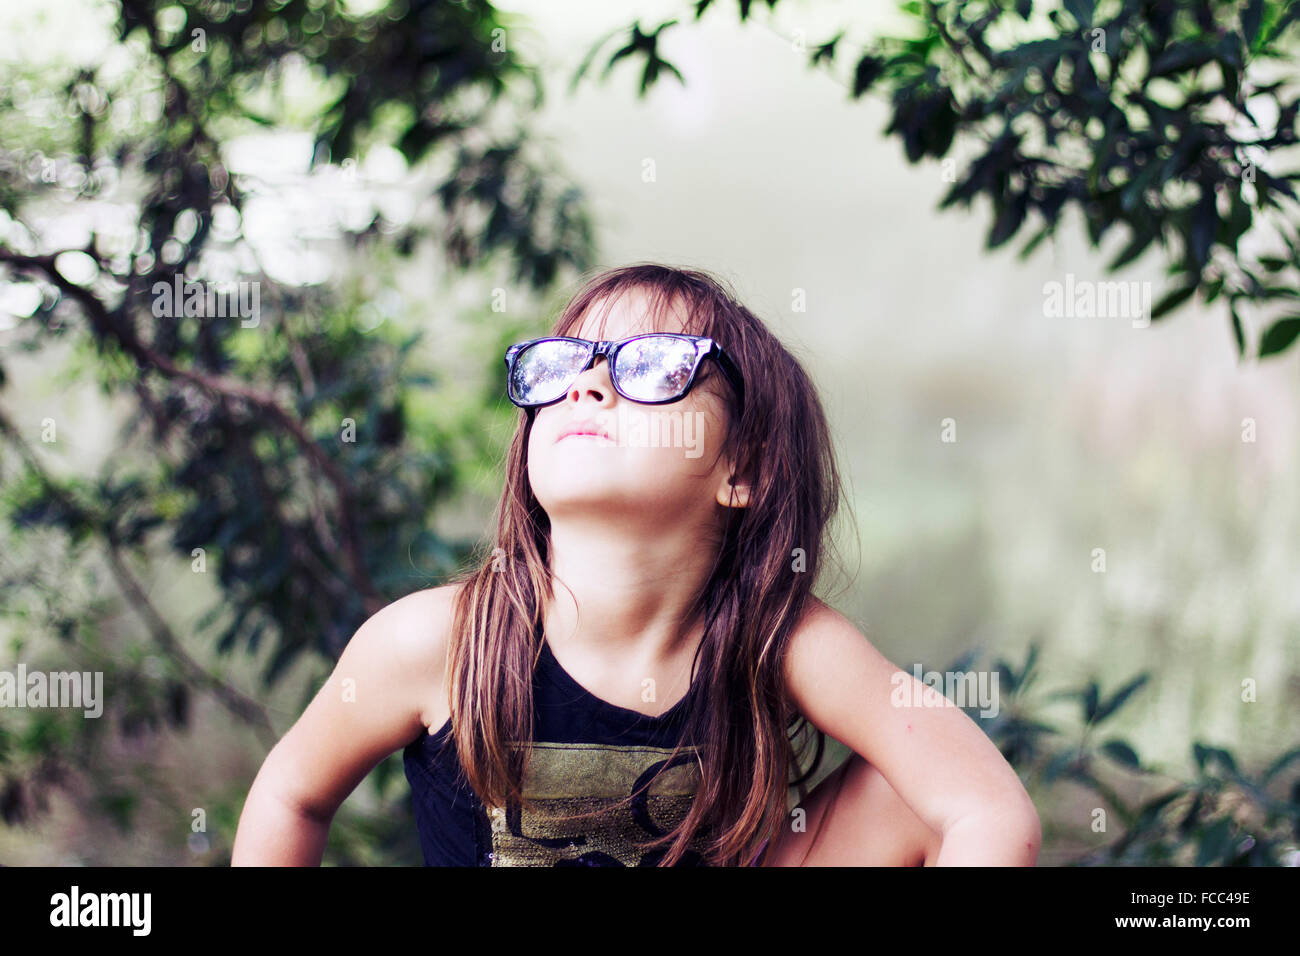 Close-Up Of A Girl Looking Up Outdoors - Stock Image